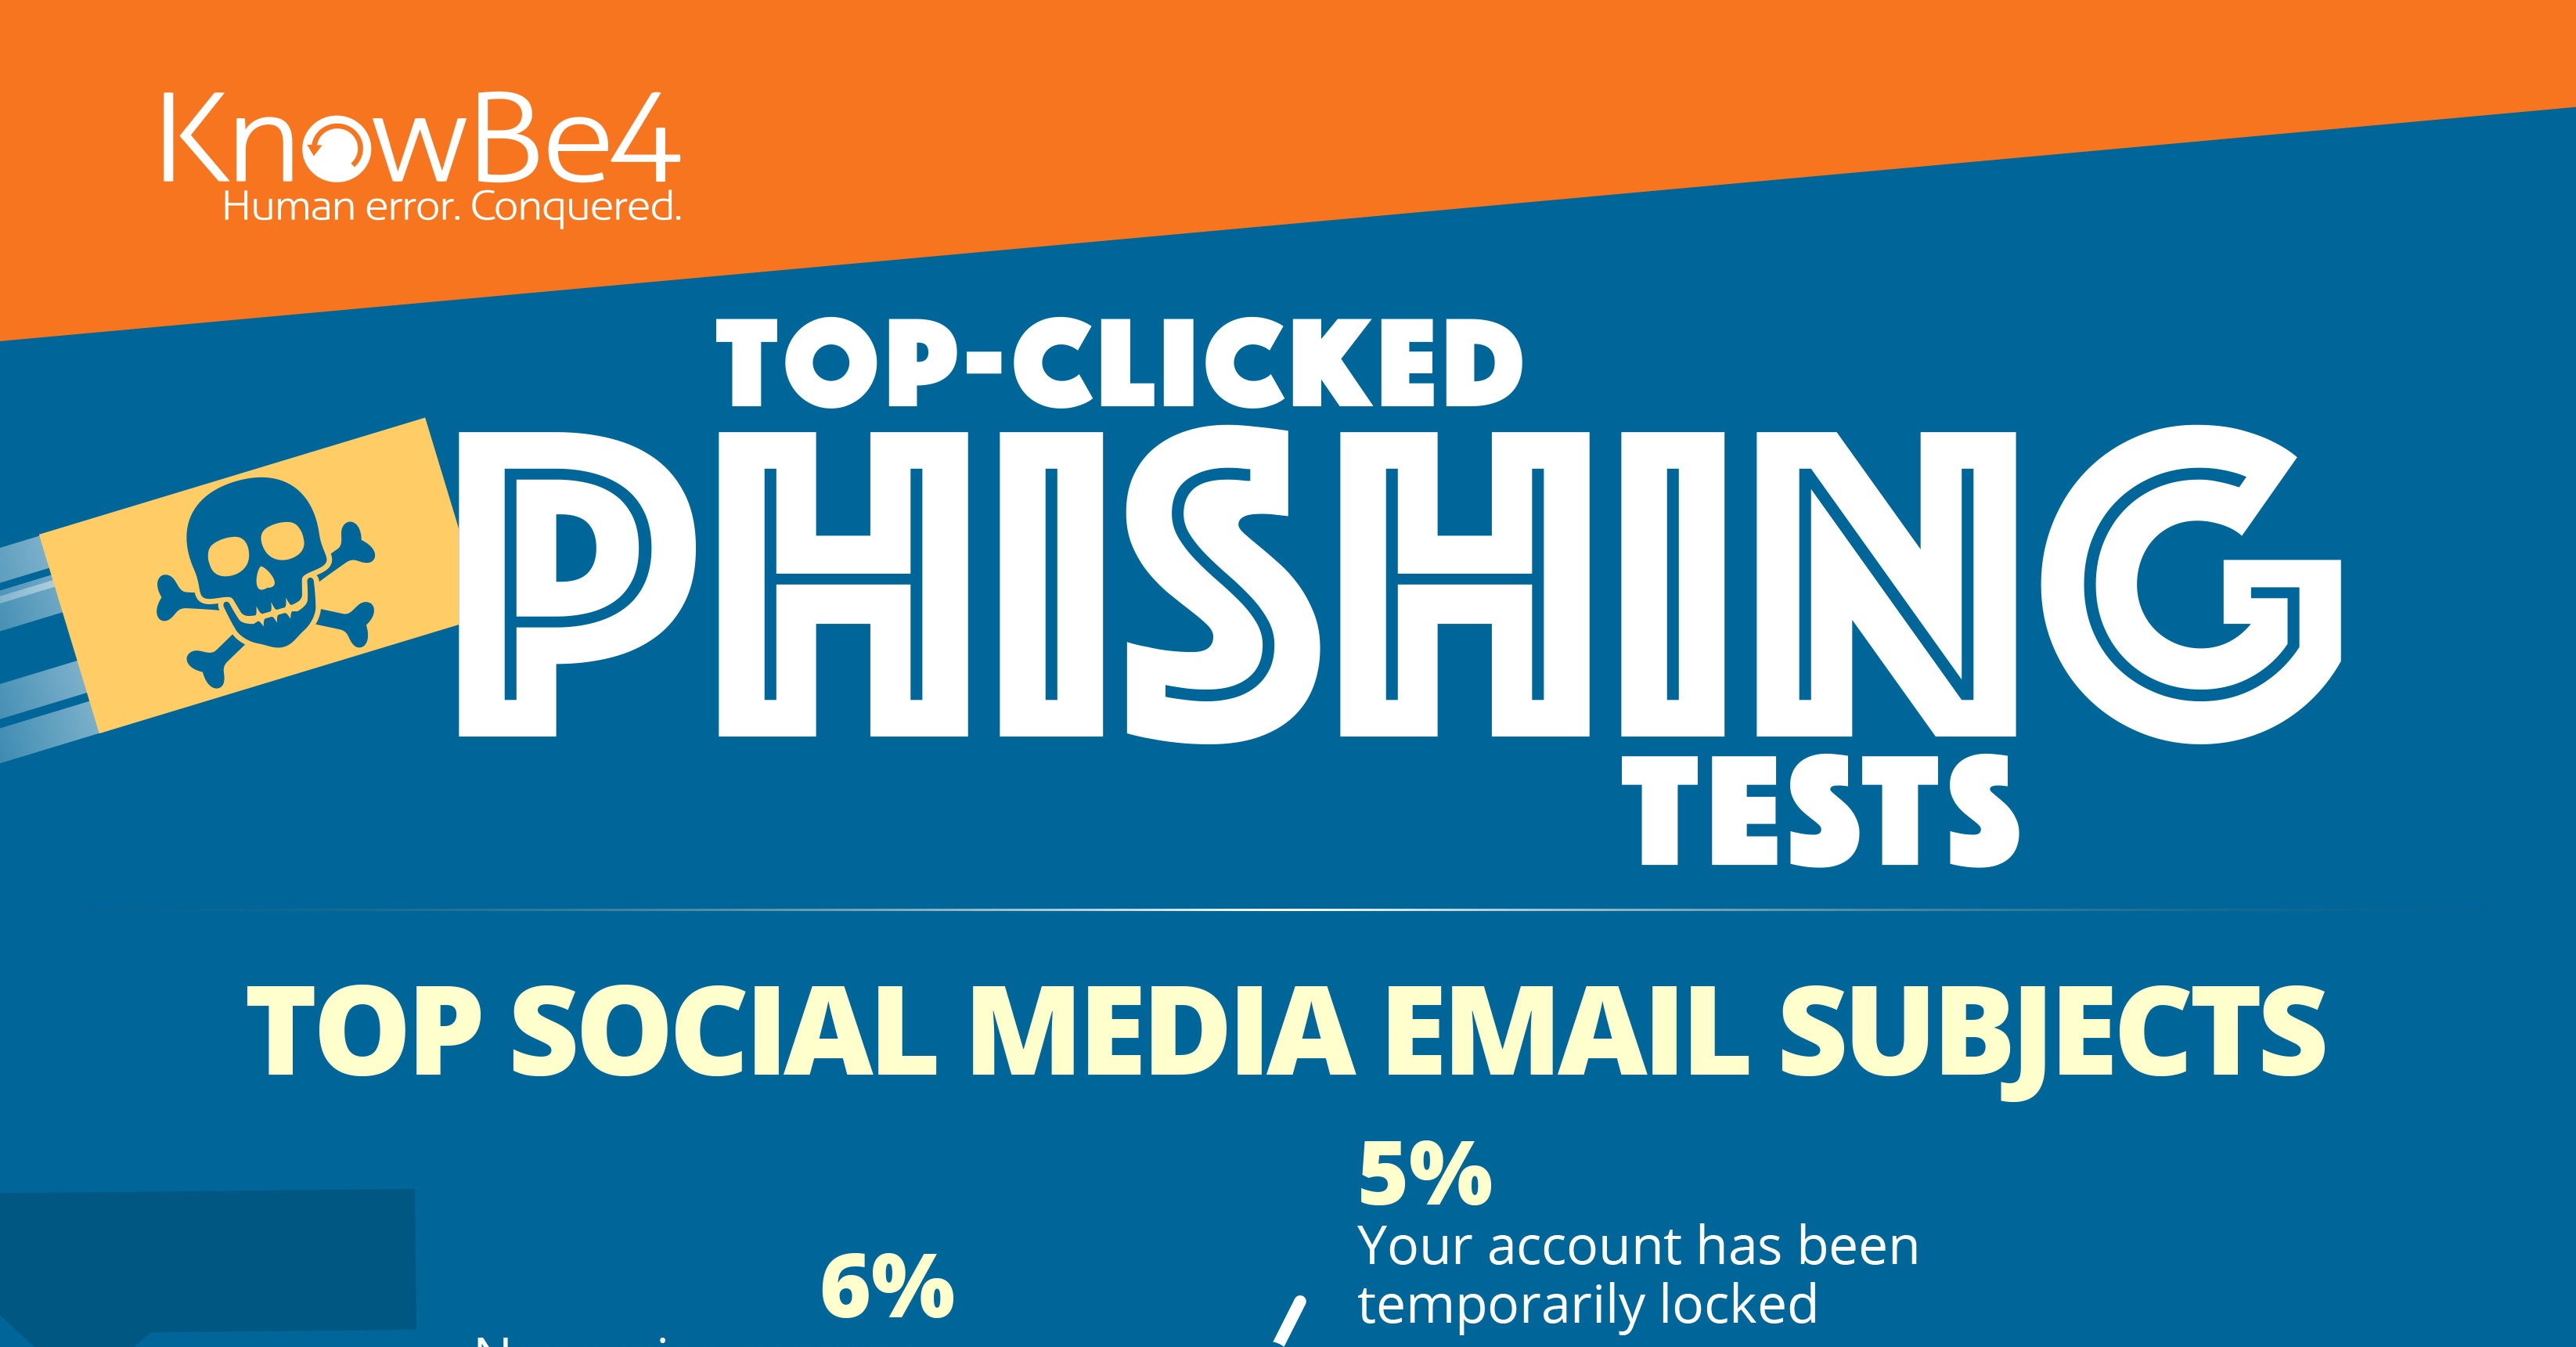 Top email and social media phishing subjects